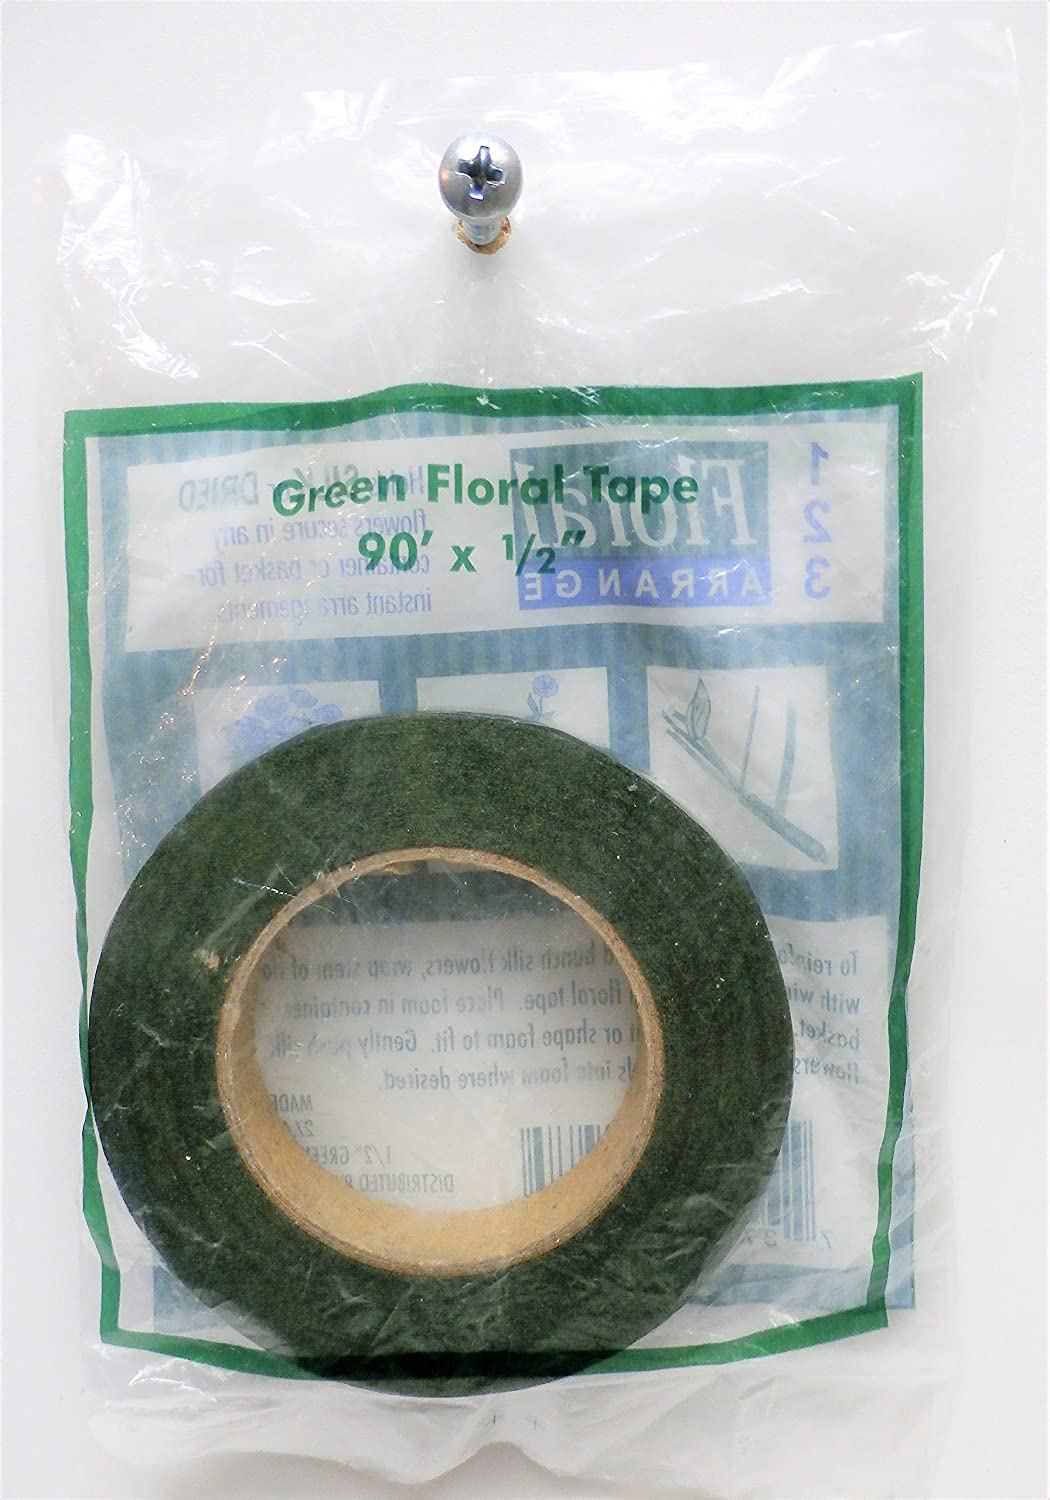 Amazon.com: Green Floral Tape 1/2 X 90: Home & Kitchen